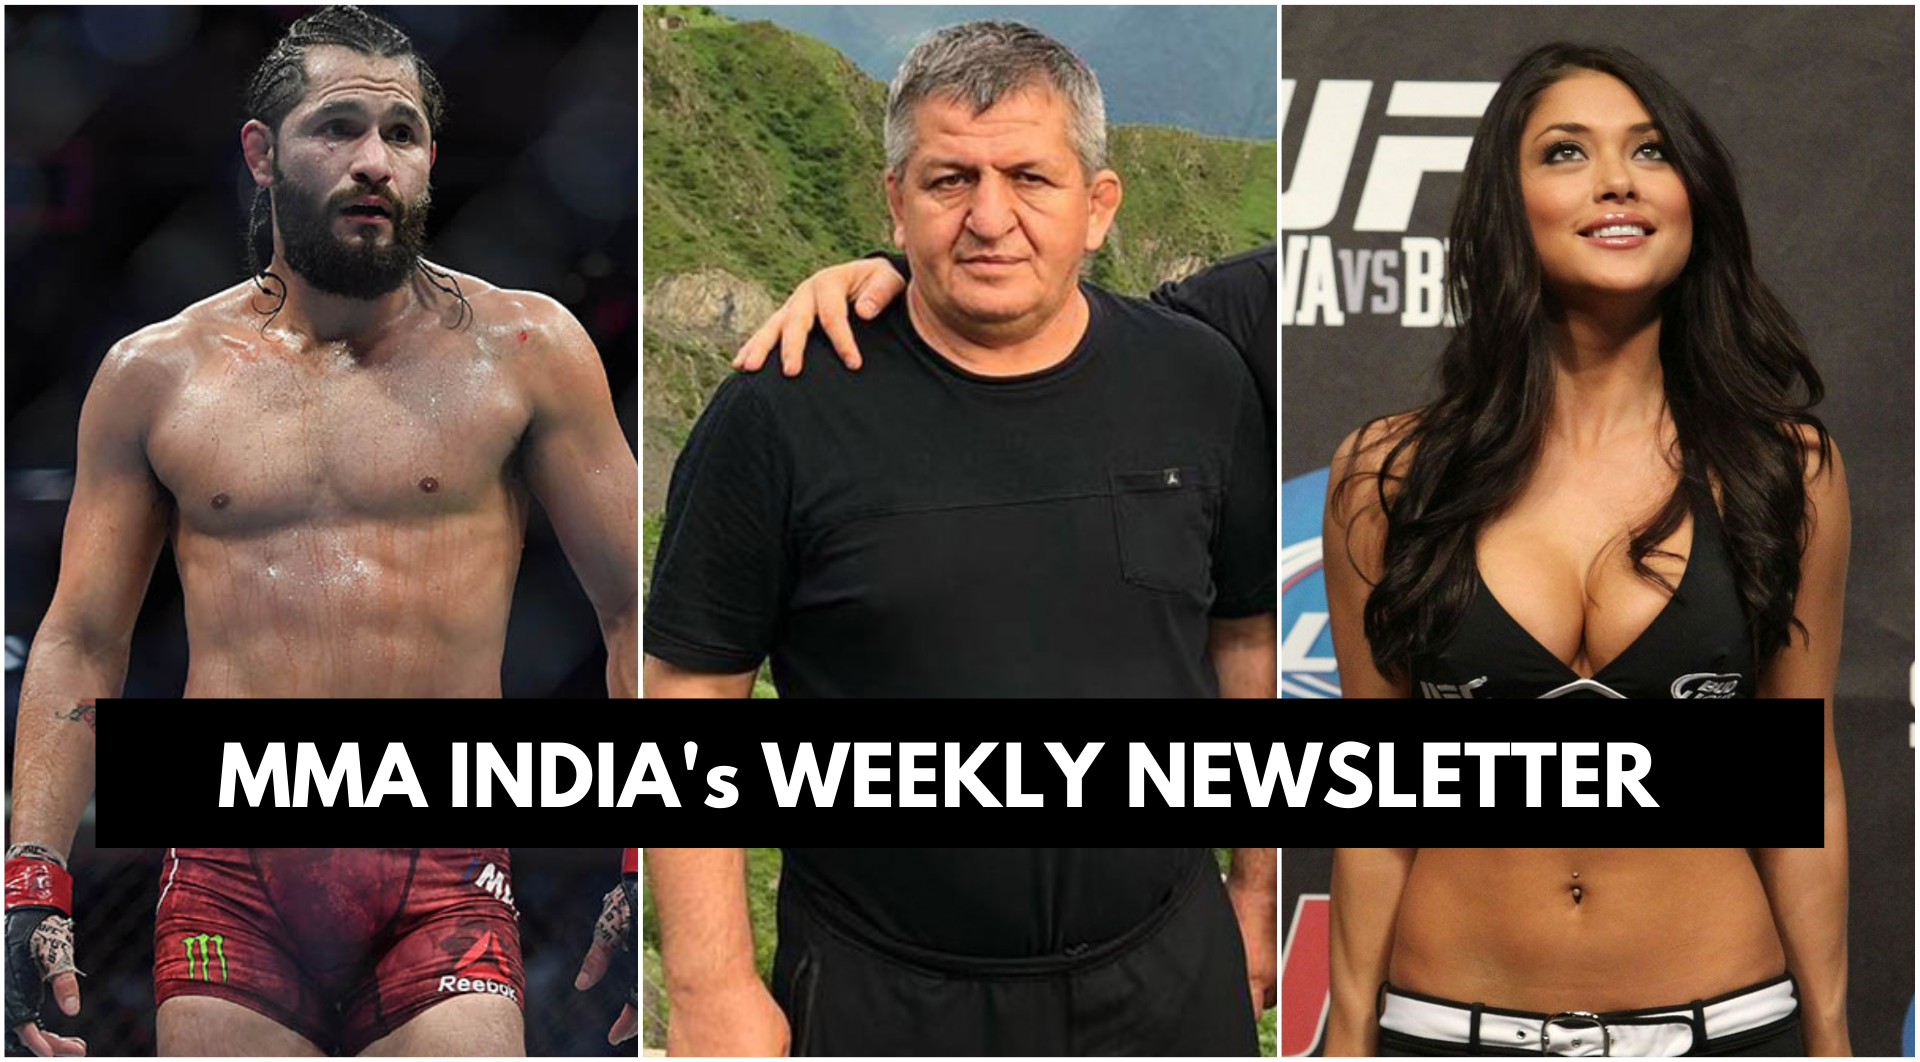 MMA India's Weekly Roundup (29 June - 5 July): Khabib's father passes away, Masvidal saves the day and more - Masvidal